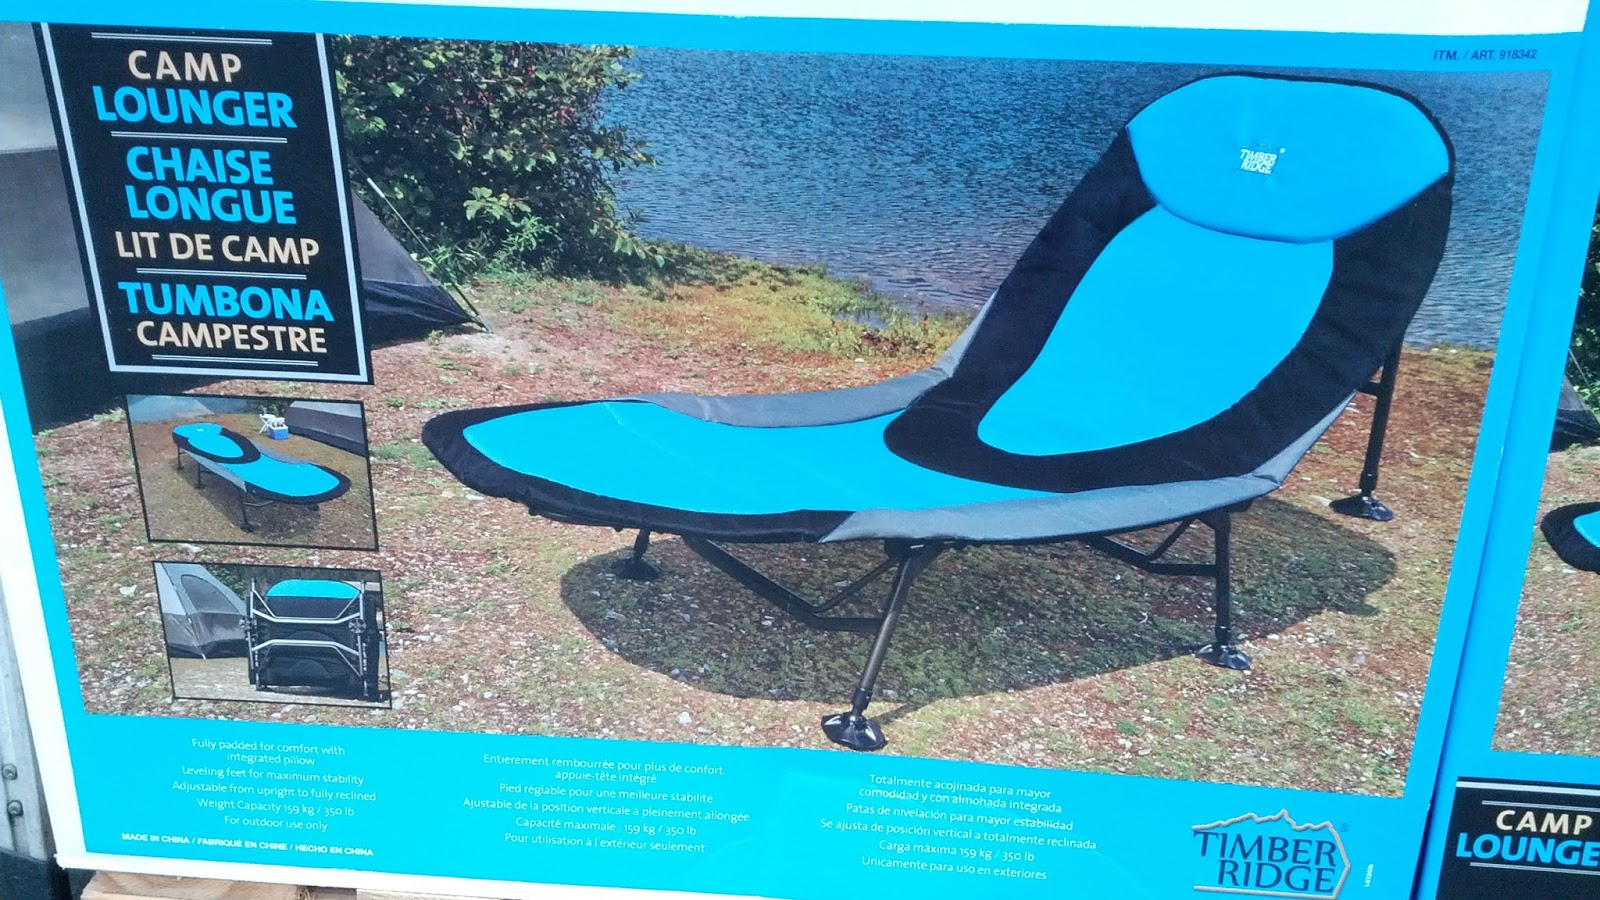 Camping Lounge Chair Timber Ridge Camp Lounger Chair Costco Weekender